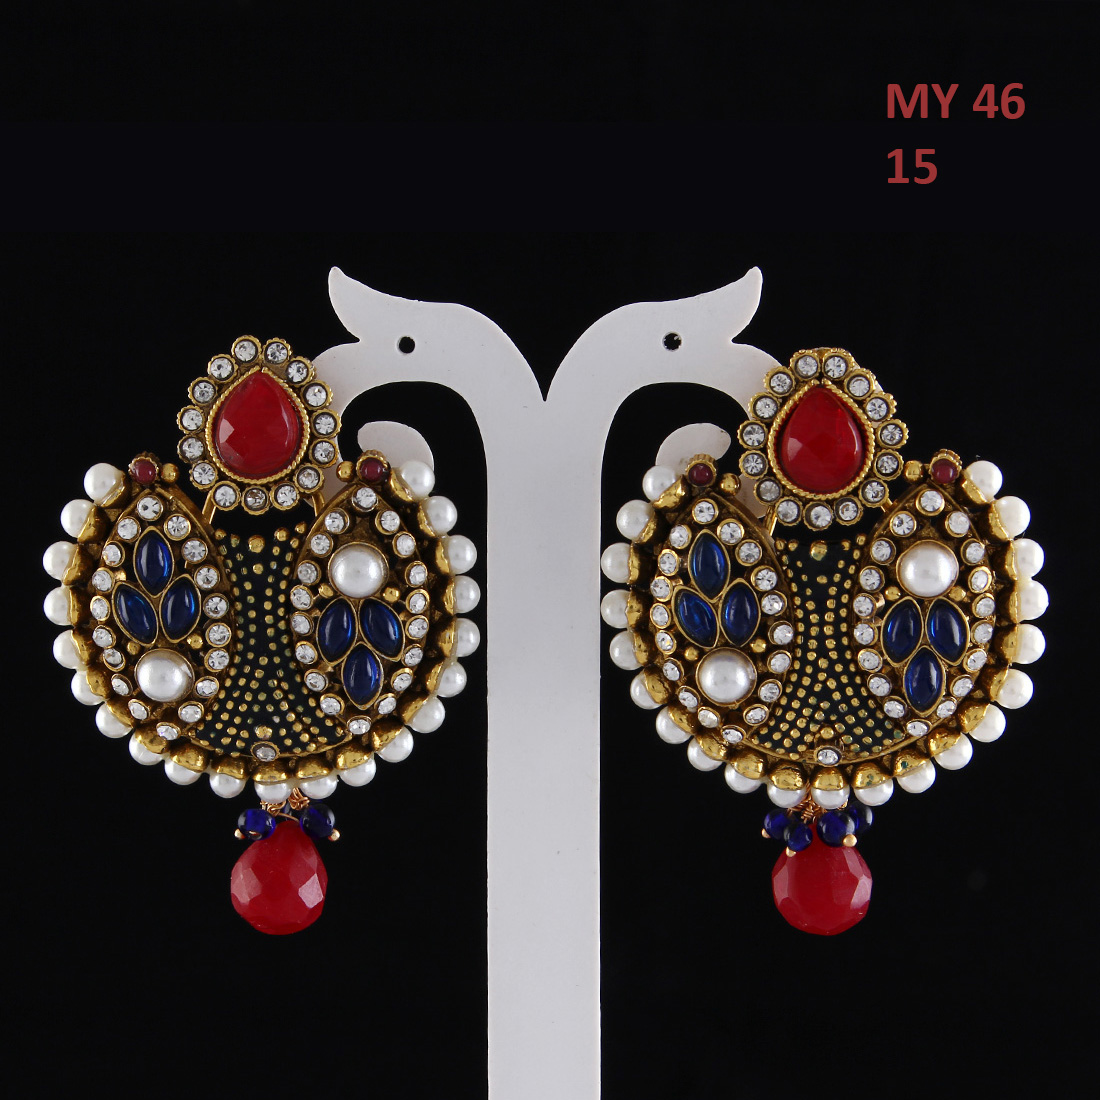 55Carat | Dangling Drop Earrings Gold Plated Red Ruby, Emerald Red Ruby, Emerald Stylish Dangling Drop Earrings Gold Plated Red Ruby, Emerald for Girlfriend Wife Stylish